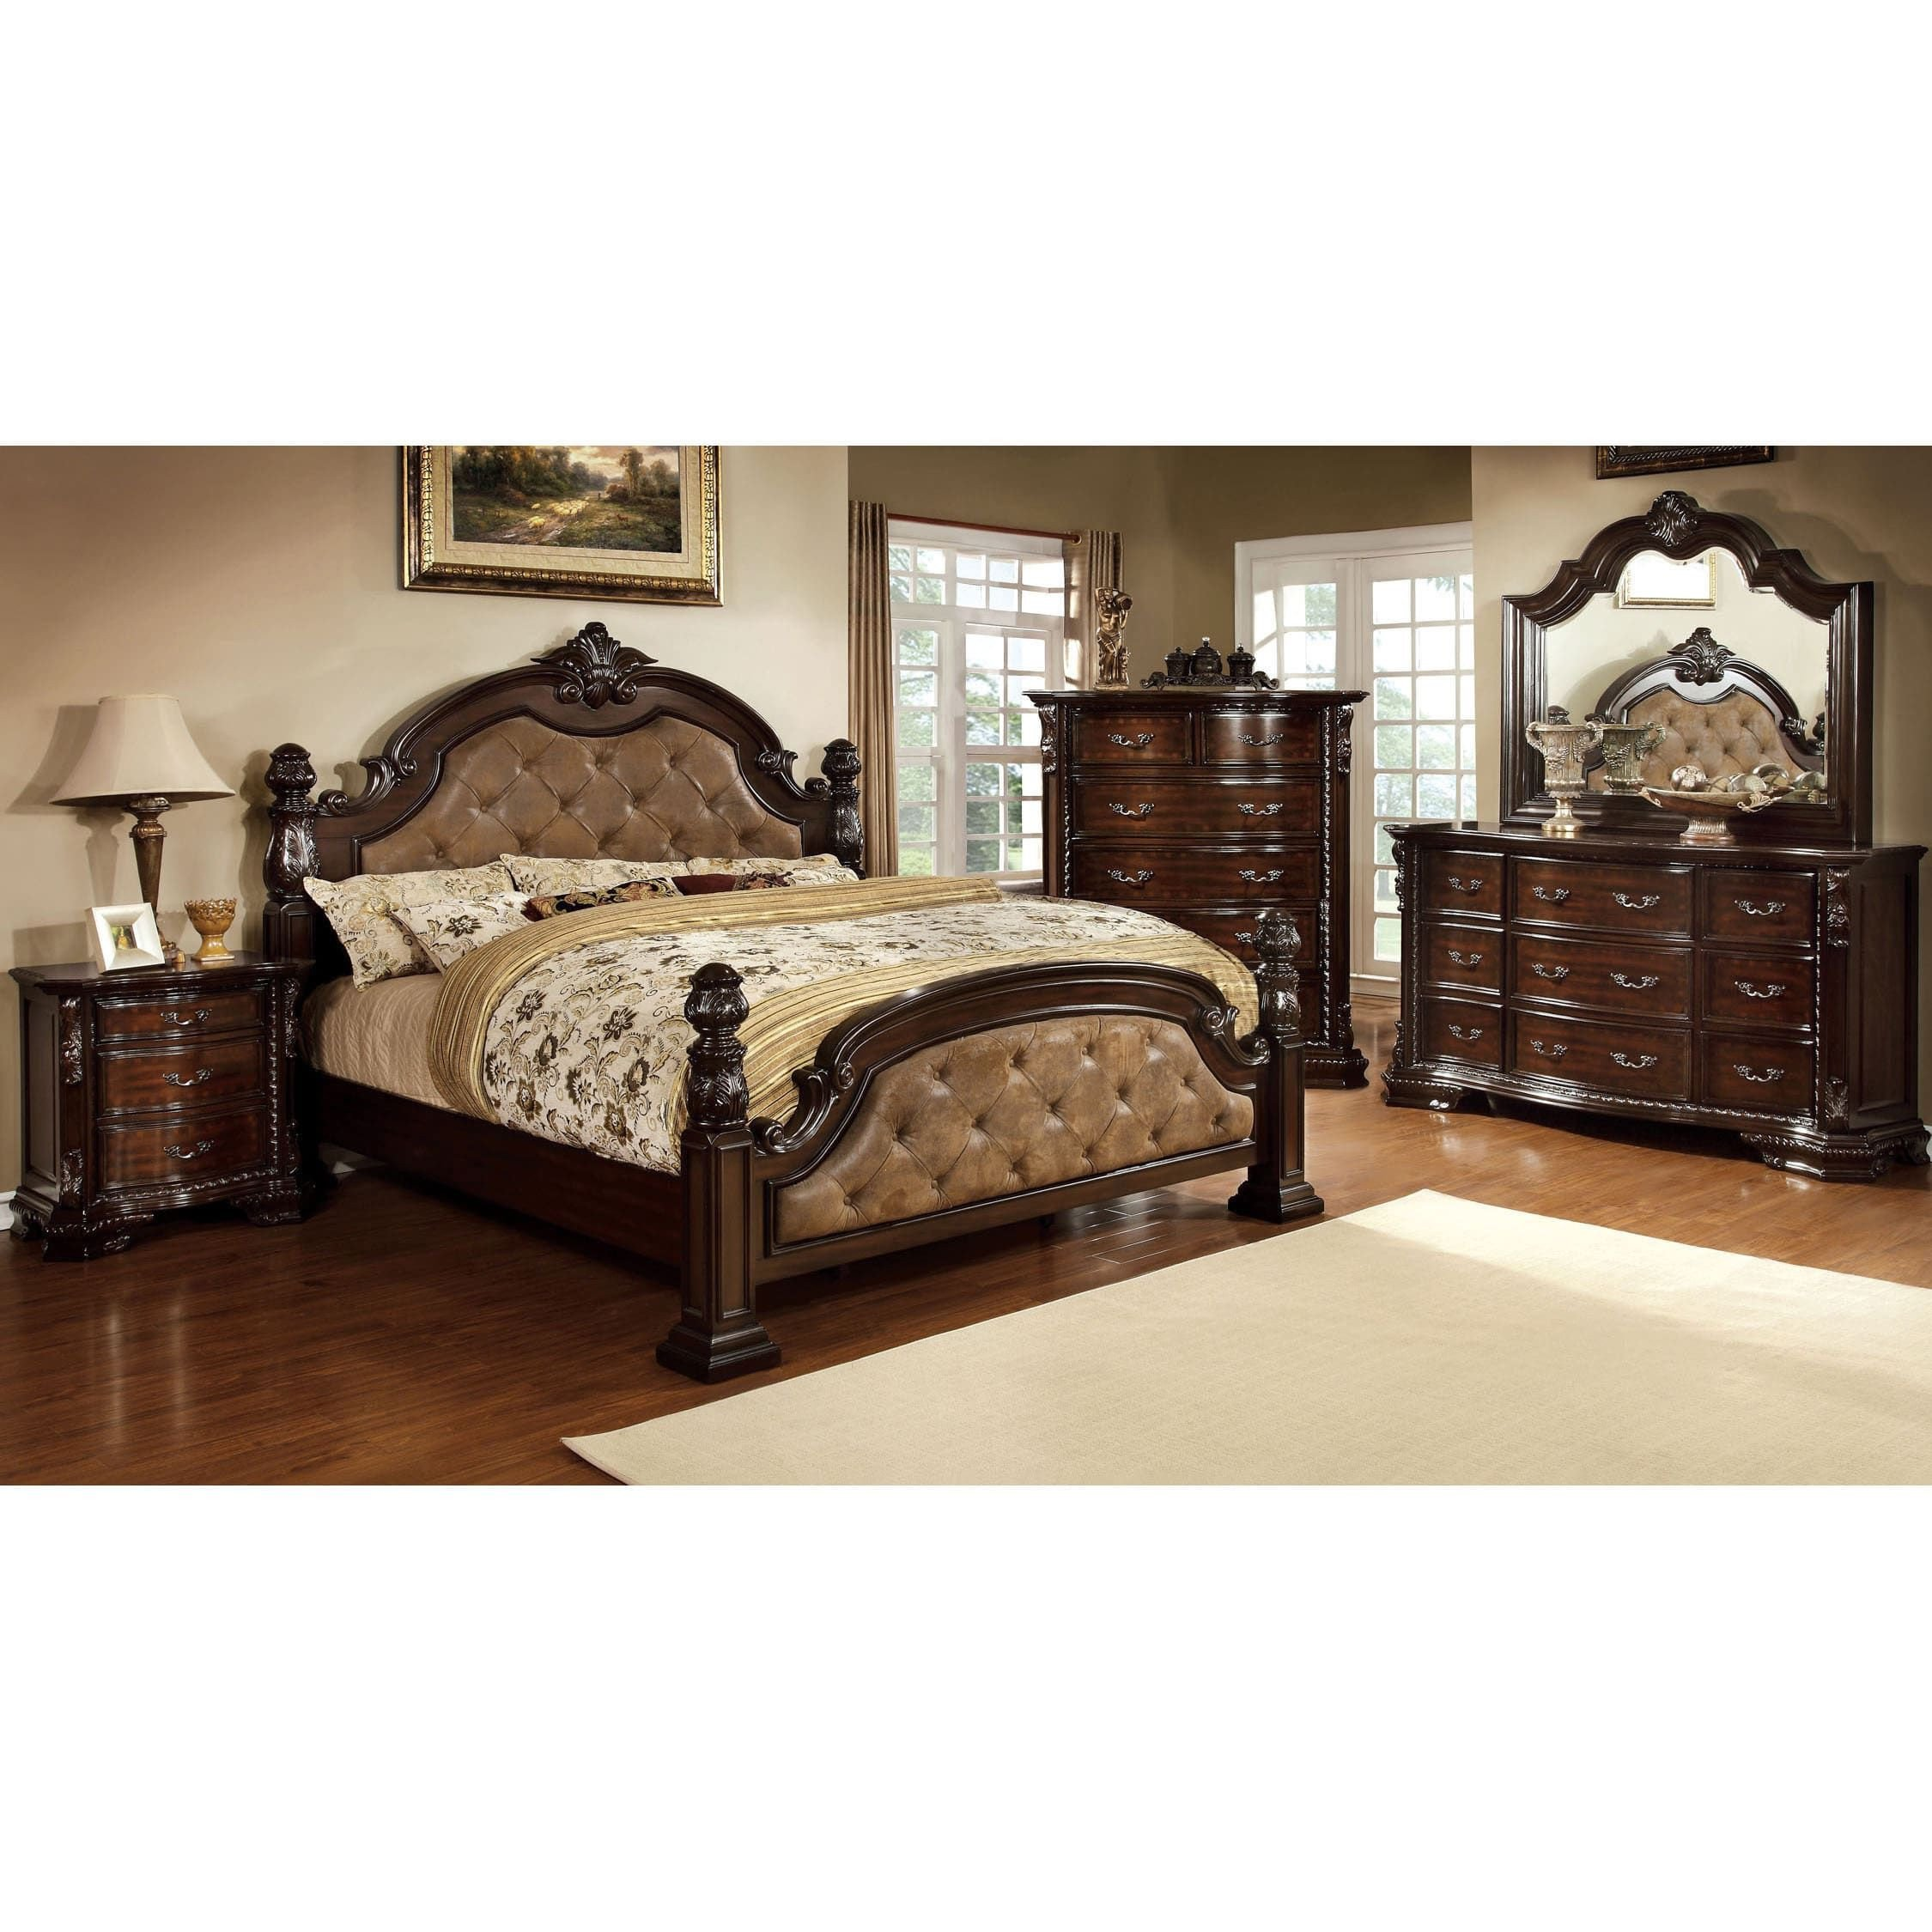 King Size Bedroom Set Unique Kassania Traditional 4 Piece Bedroom Set by Foa California